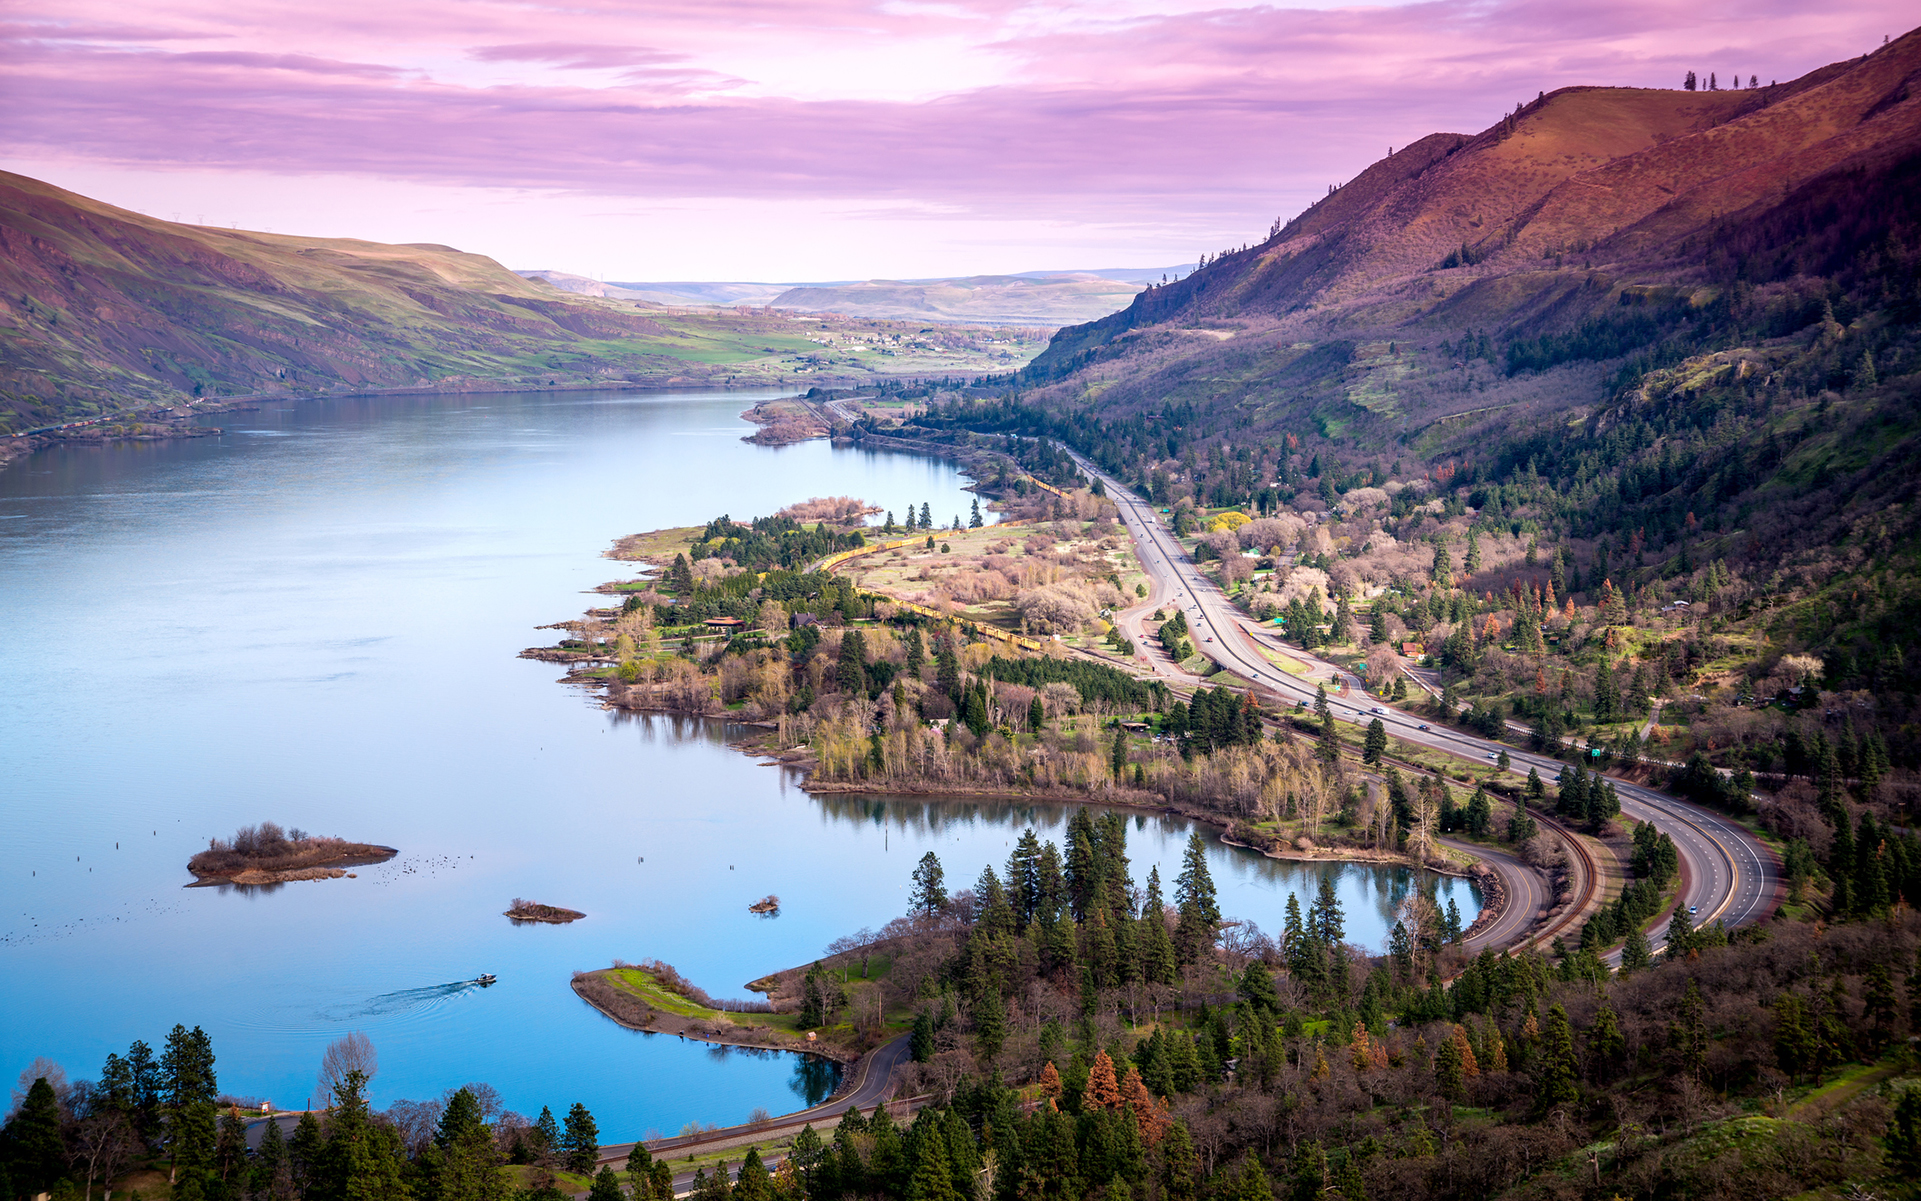 The Ultimate Cannabis Road Trip Through Oregon | Leafly